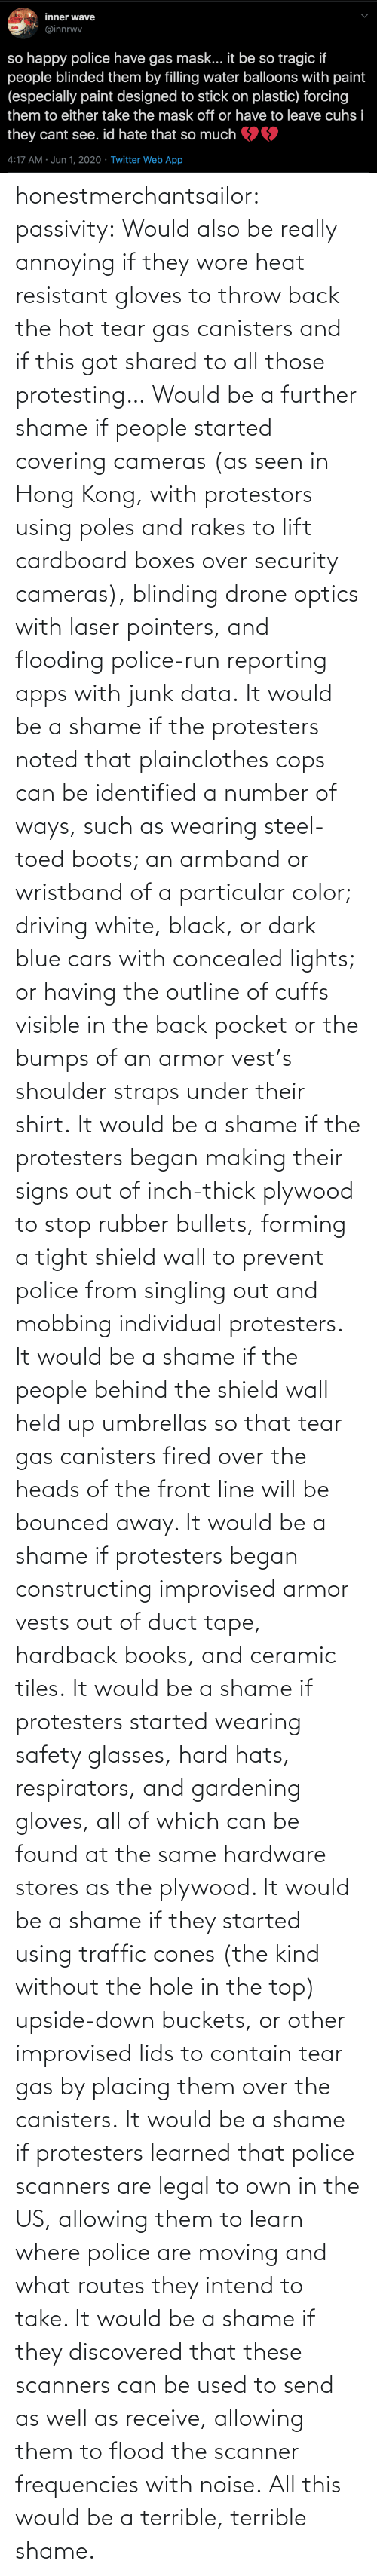 laser: honestmerchantsailor: passivity: Would also be really annoying if they wore heat resistant gloves to throw back the hot tear gas canisters and if this got shared to all those protesting… Would be a further shame if people started covering cameras (as seen in Hong Kong, with protestors using poles and rakes to lift cardboard boxes over security cameras), blinding drone optics with laser pointers, and flooding police-run reporting apps with junk data. It would be a shame if the protesters noted that plainclothes cops can be identified a number of ways, such as wearing steel-toed boots; an armband or wristband of a particular color; driving white, black, or dark blue cars with concealed lights; or having the outline of cuffs visible in the back pocket or the bumps of an armor vest's shoulder straps under their shirt. It would be a shame if the protesters began making their signs out of inch-thick plywood to stop rubber bullets, forming a tight shield wall to prevent police from singling out and mobbing individual protesters. It would be a shame if the people behind the shield wall held up umbrellas so that tear gas canisters fired over the heads of the front line will be bounced away. It would be a shame if protesters began constructing improvised armor vests out of duct tape, hardback books, and ceramic tiles. It would be a shame if protesters started wearing safety glasses, hard hats, respirators, and gardening gloves, all of which can be found at the same hardware stores as the plywood. It would be a shame if they started using traffic cones (the kind without the hole in the top) upside-down buckets, or other improvised lids to contain tear gas by placing them over the canisters. It would be a shame if protesters learned that police scanners are legal to own in the US, allowing them to learn where police are moving and what routes they intend to take. It would be a shame if they discovered that these scanners can be used to send as well as receive, allowing them to flood the scanner frequencies with noise. All this would be a terrible, terrible shame.